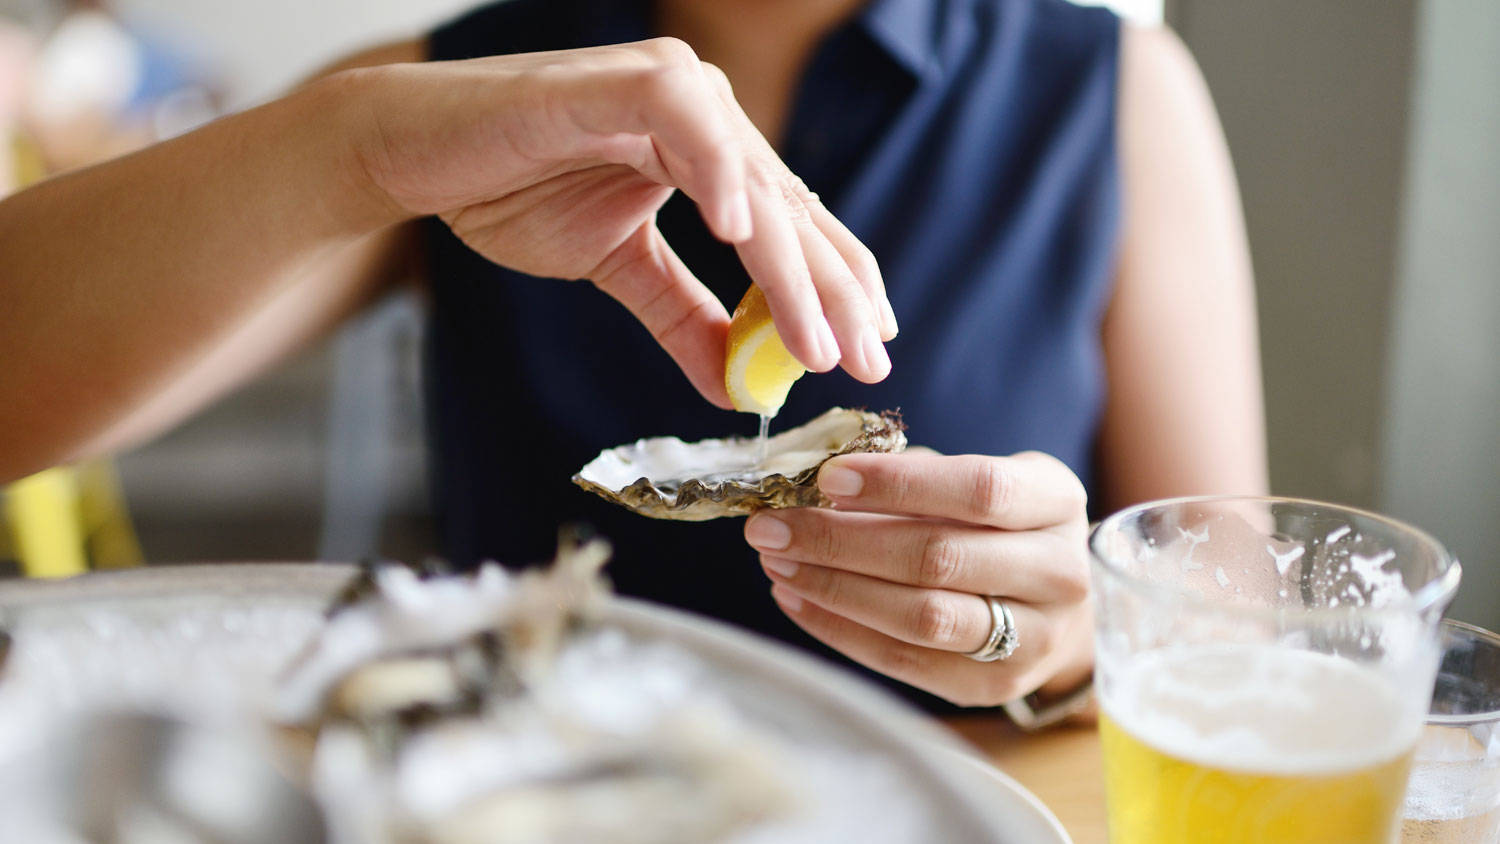 Watch 100 People Try Their First Raw Oyster